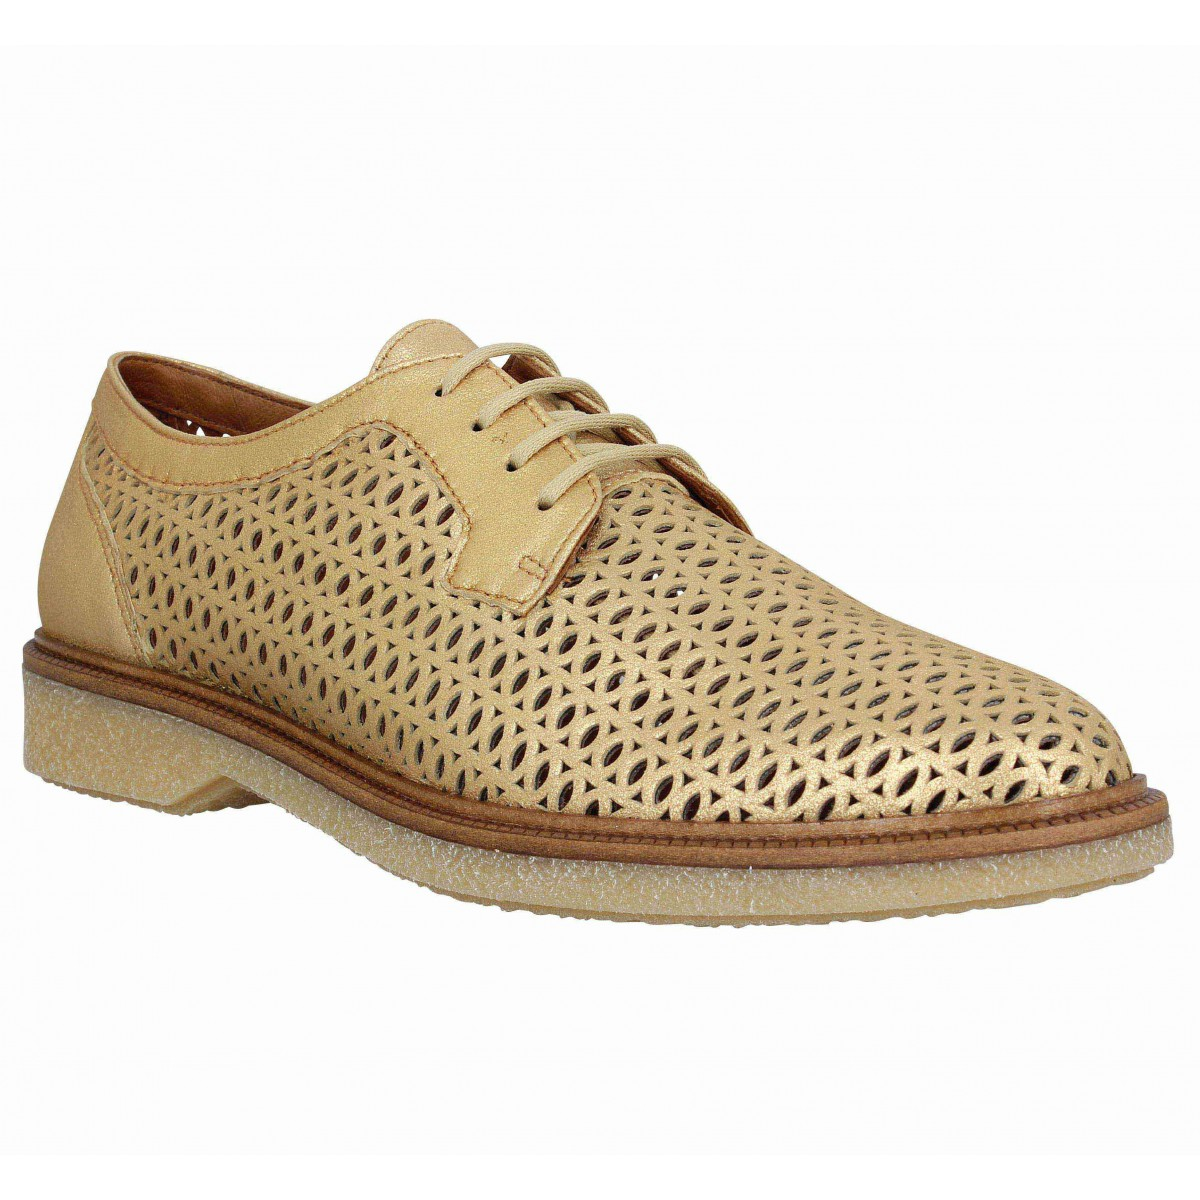 Chaussures à lacets SCHMOOVE Darwin Classic cuir Femme Or